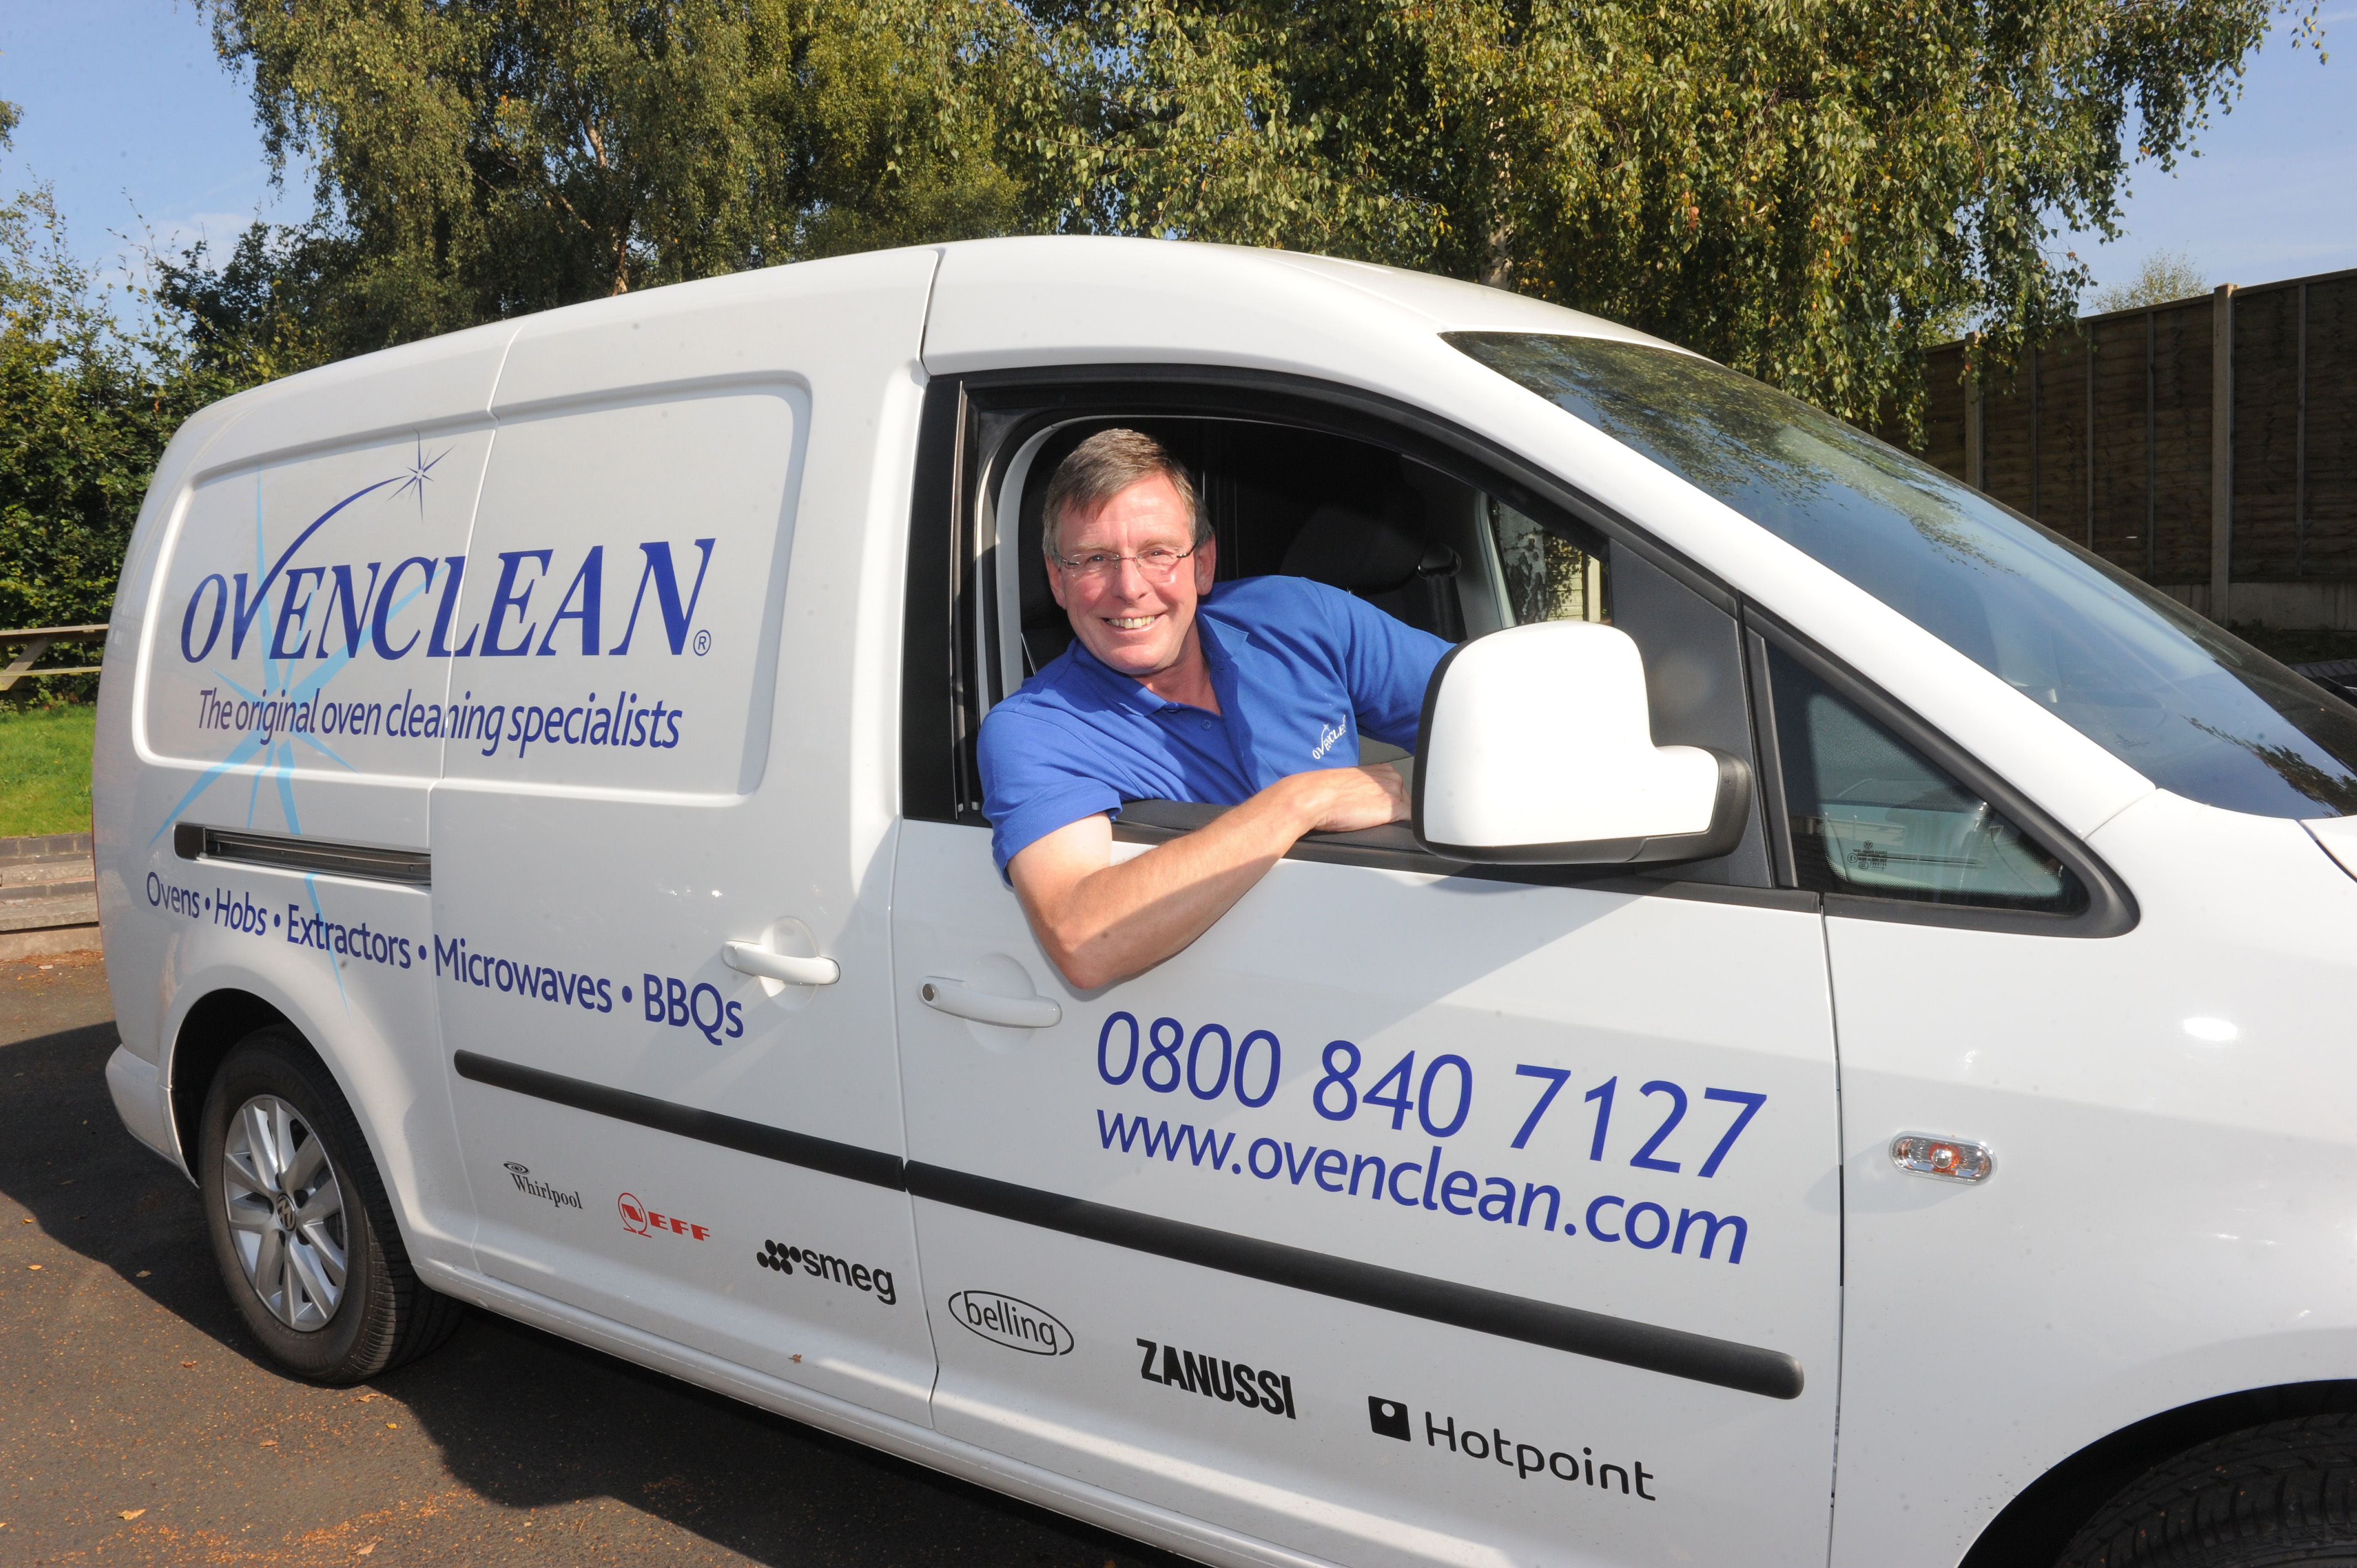 Ovenclean franchisees celebrate most successful July on record